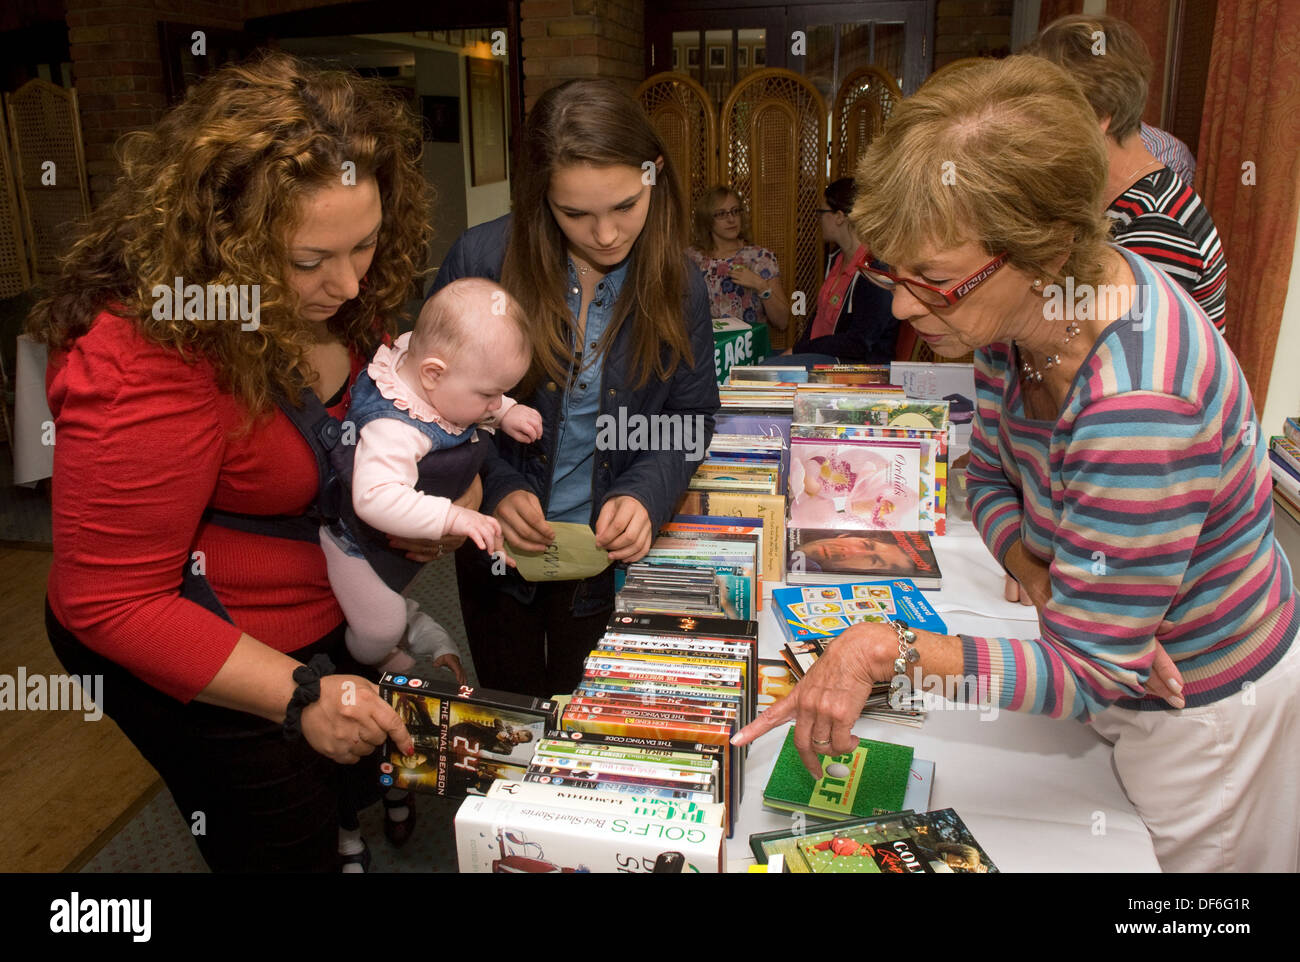 Visitors browsing book and DVD stall at a Macmillan Cancer Support Coffee Morning, Farnham, Surrey, UK. - Stock Image